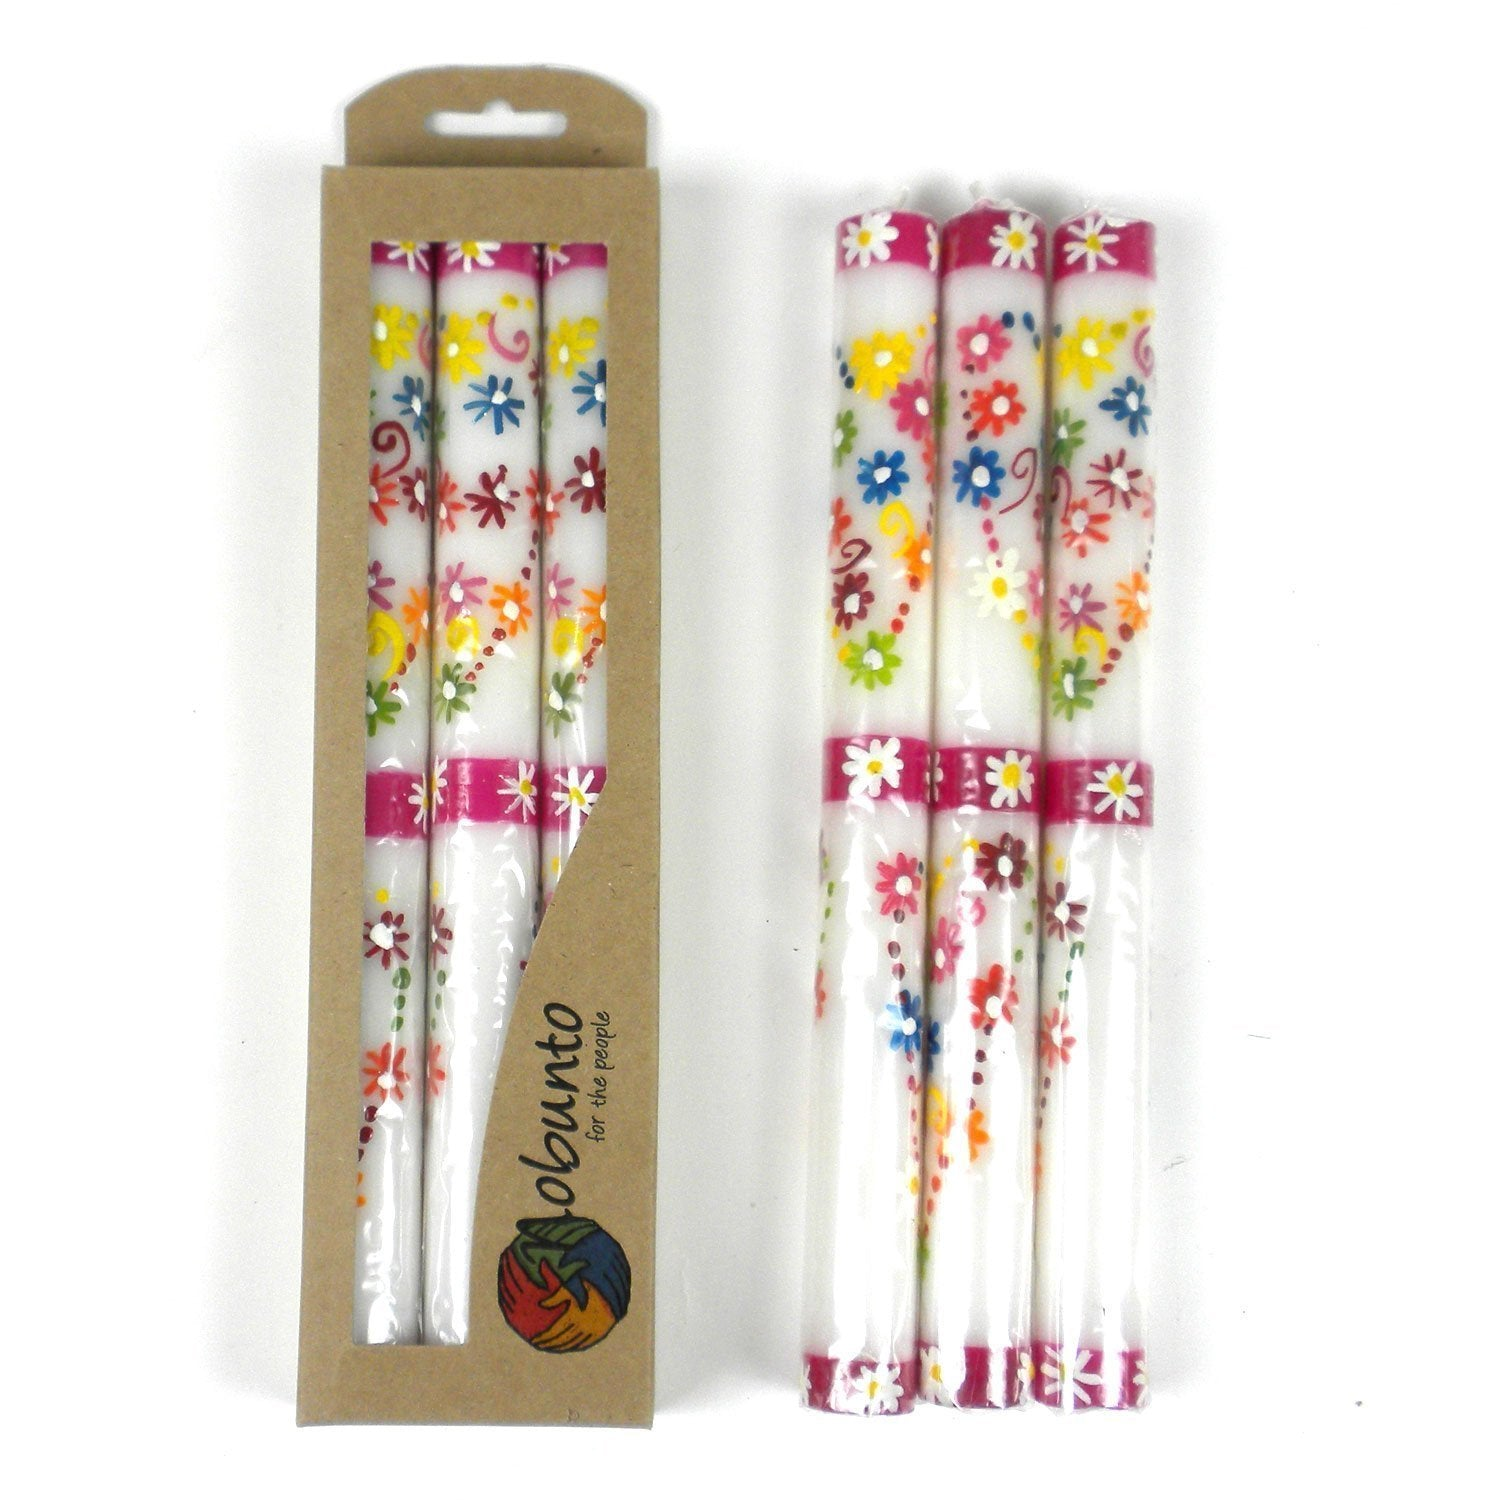 Set of 3 Hand Painted Taper Candles in Gift Box - Mamako Design